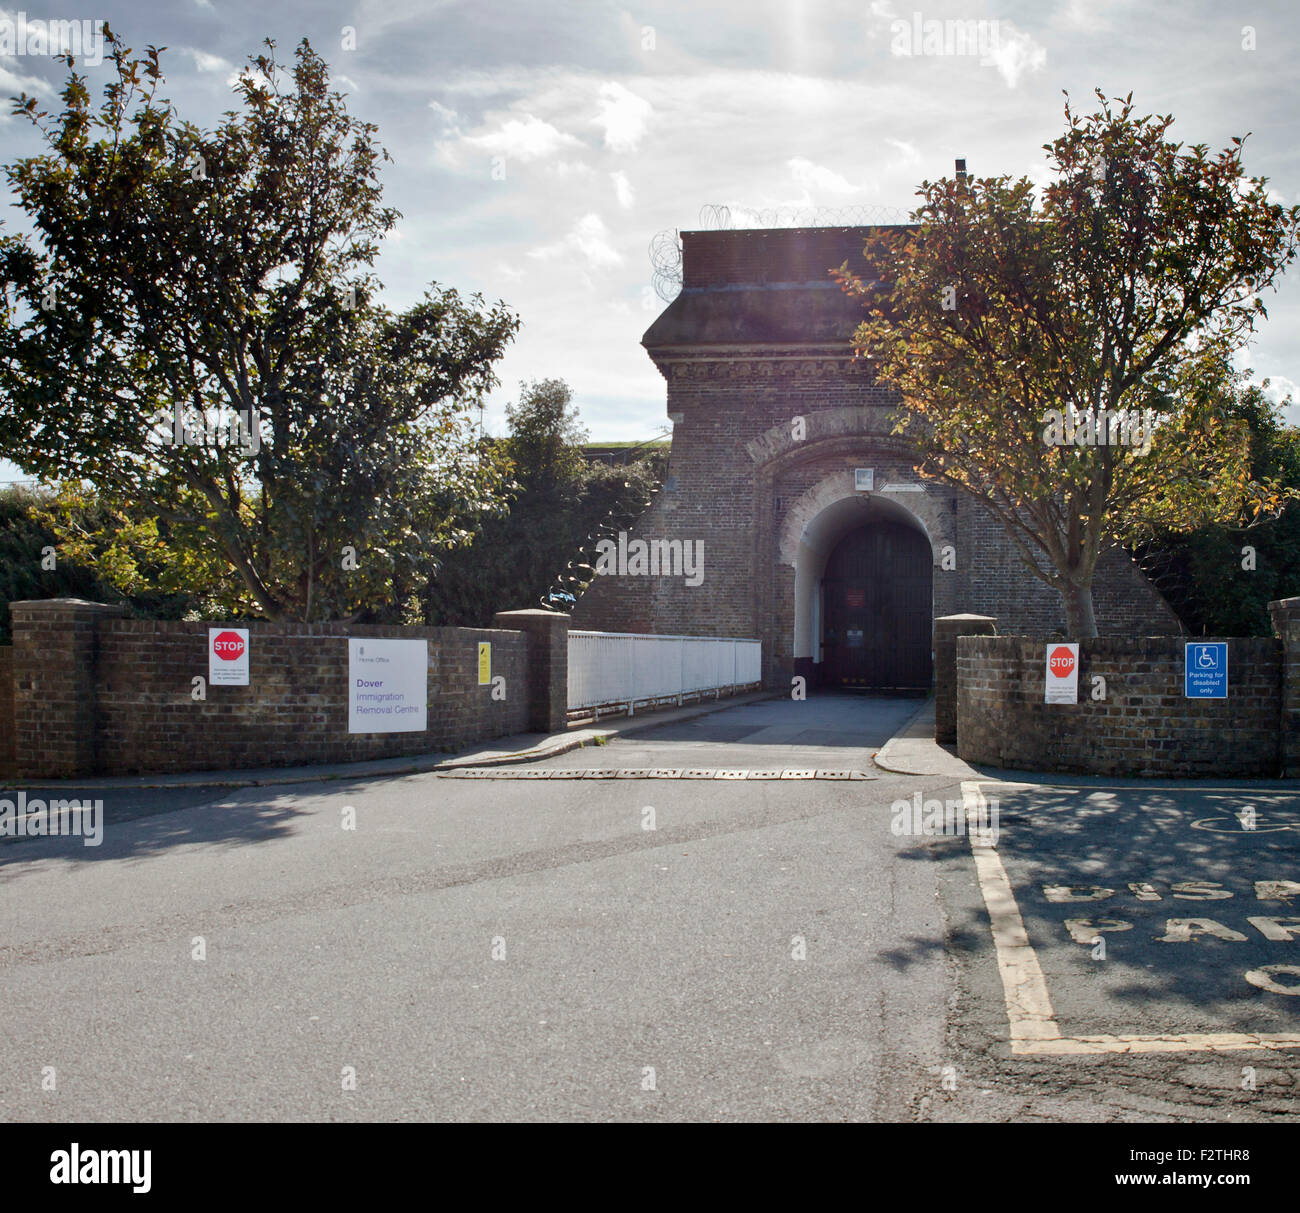 Dover, UK. 23rd September, 2015. Main entrance to the Dover Immigration Detention Centre in Dover, located in the - Stock Image